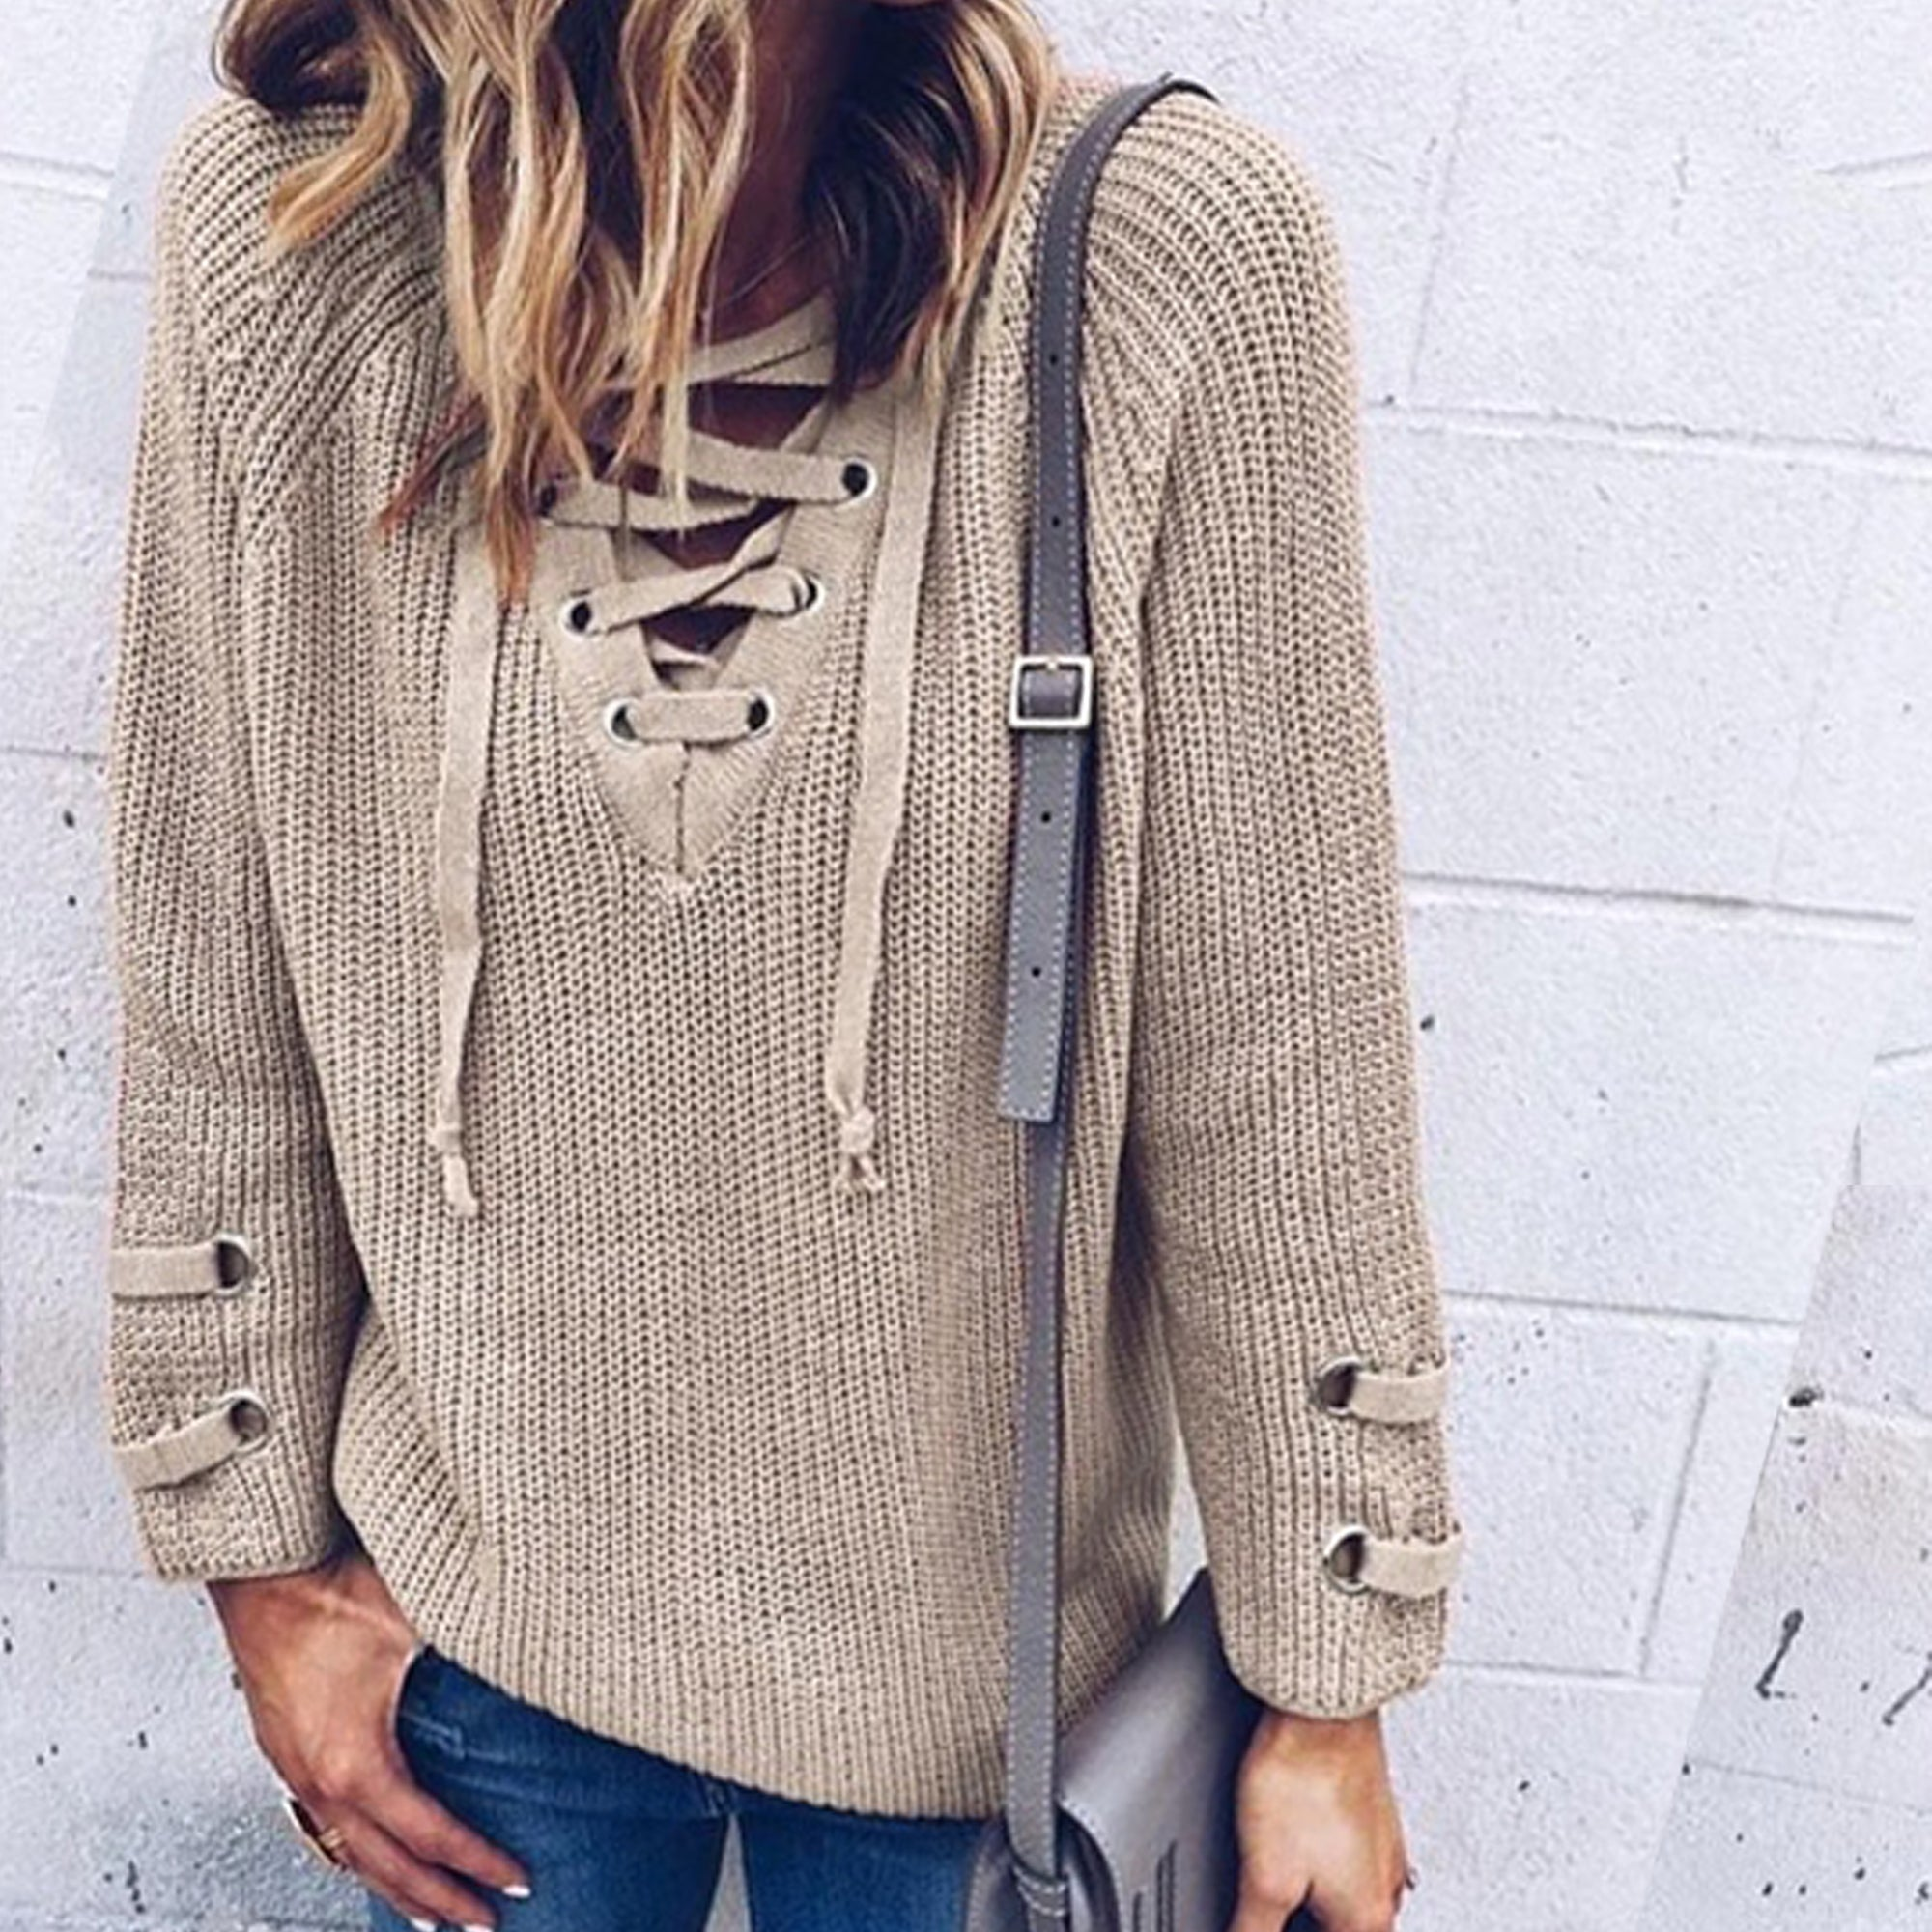 ... Cute Casual Spring Outfit Ideas for Teen Girls for School - Lace Up  Criss Cross Knitted ... a3e5911a8